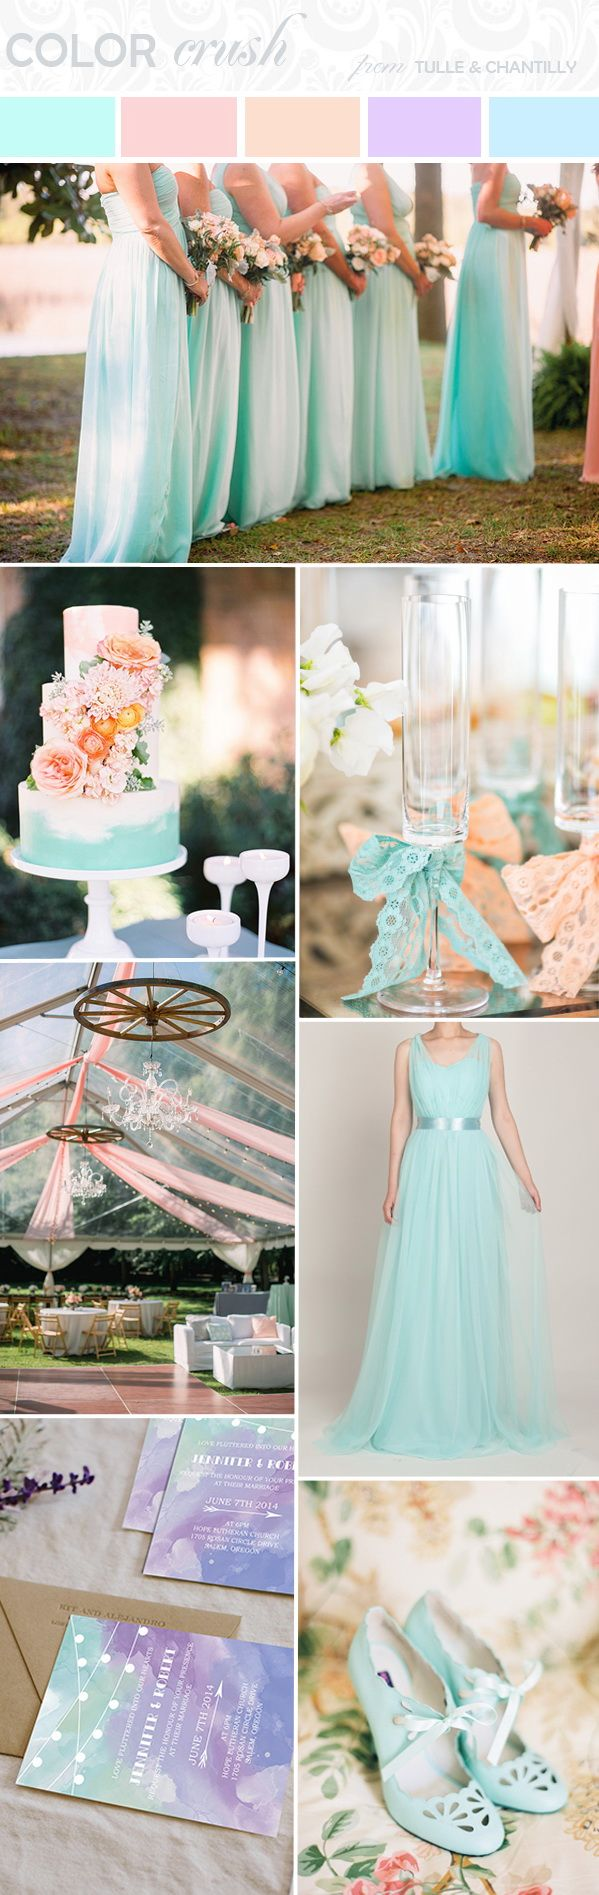 Best 25 peach wedding dresses ideas on pinterest pink wedding mint blue and peach wedding color ideas with mint blue bridesmaid dress ombrellifo Images